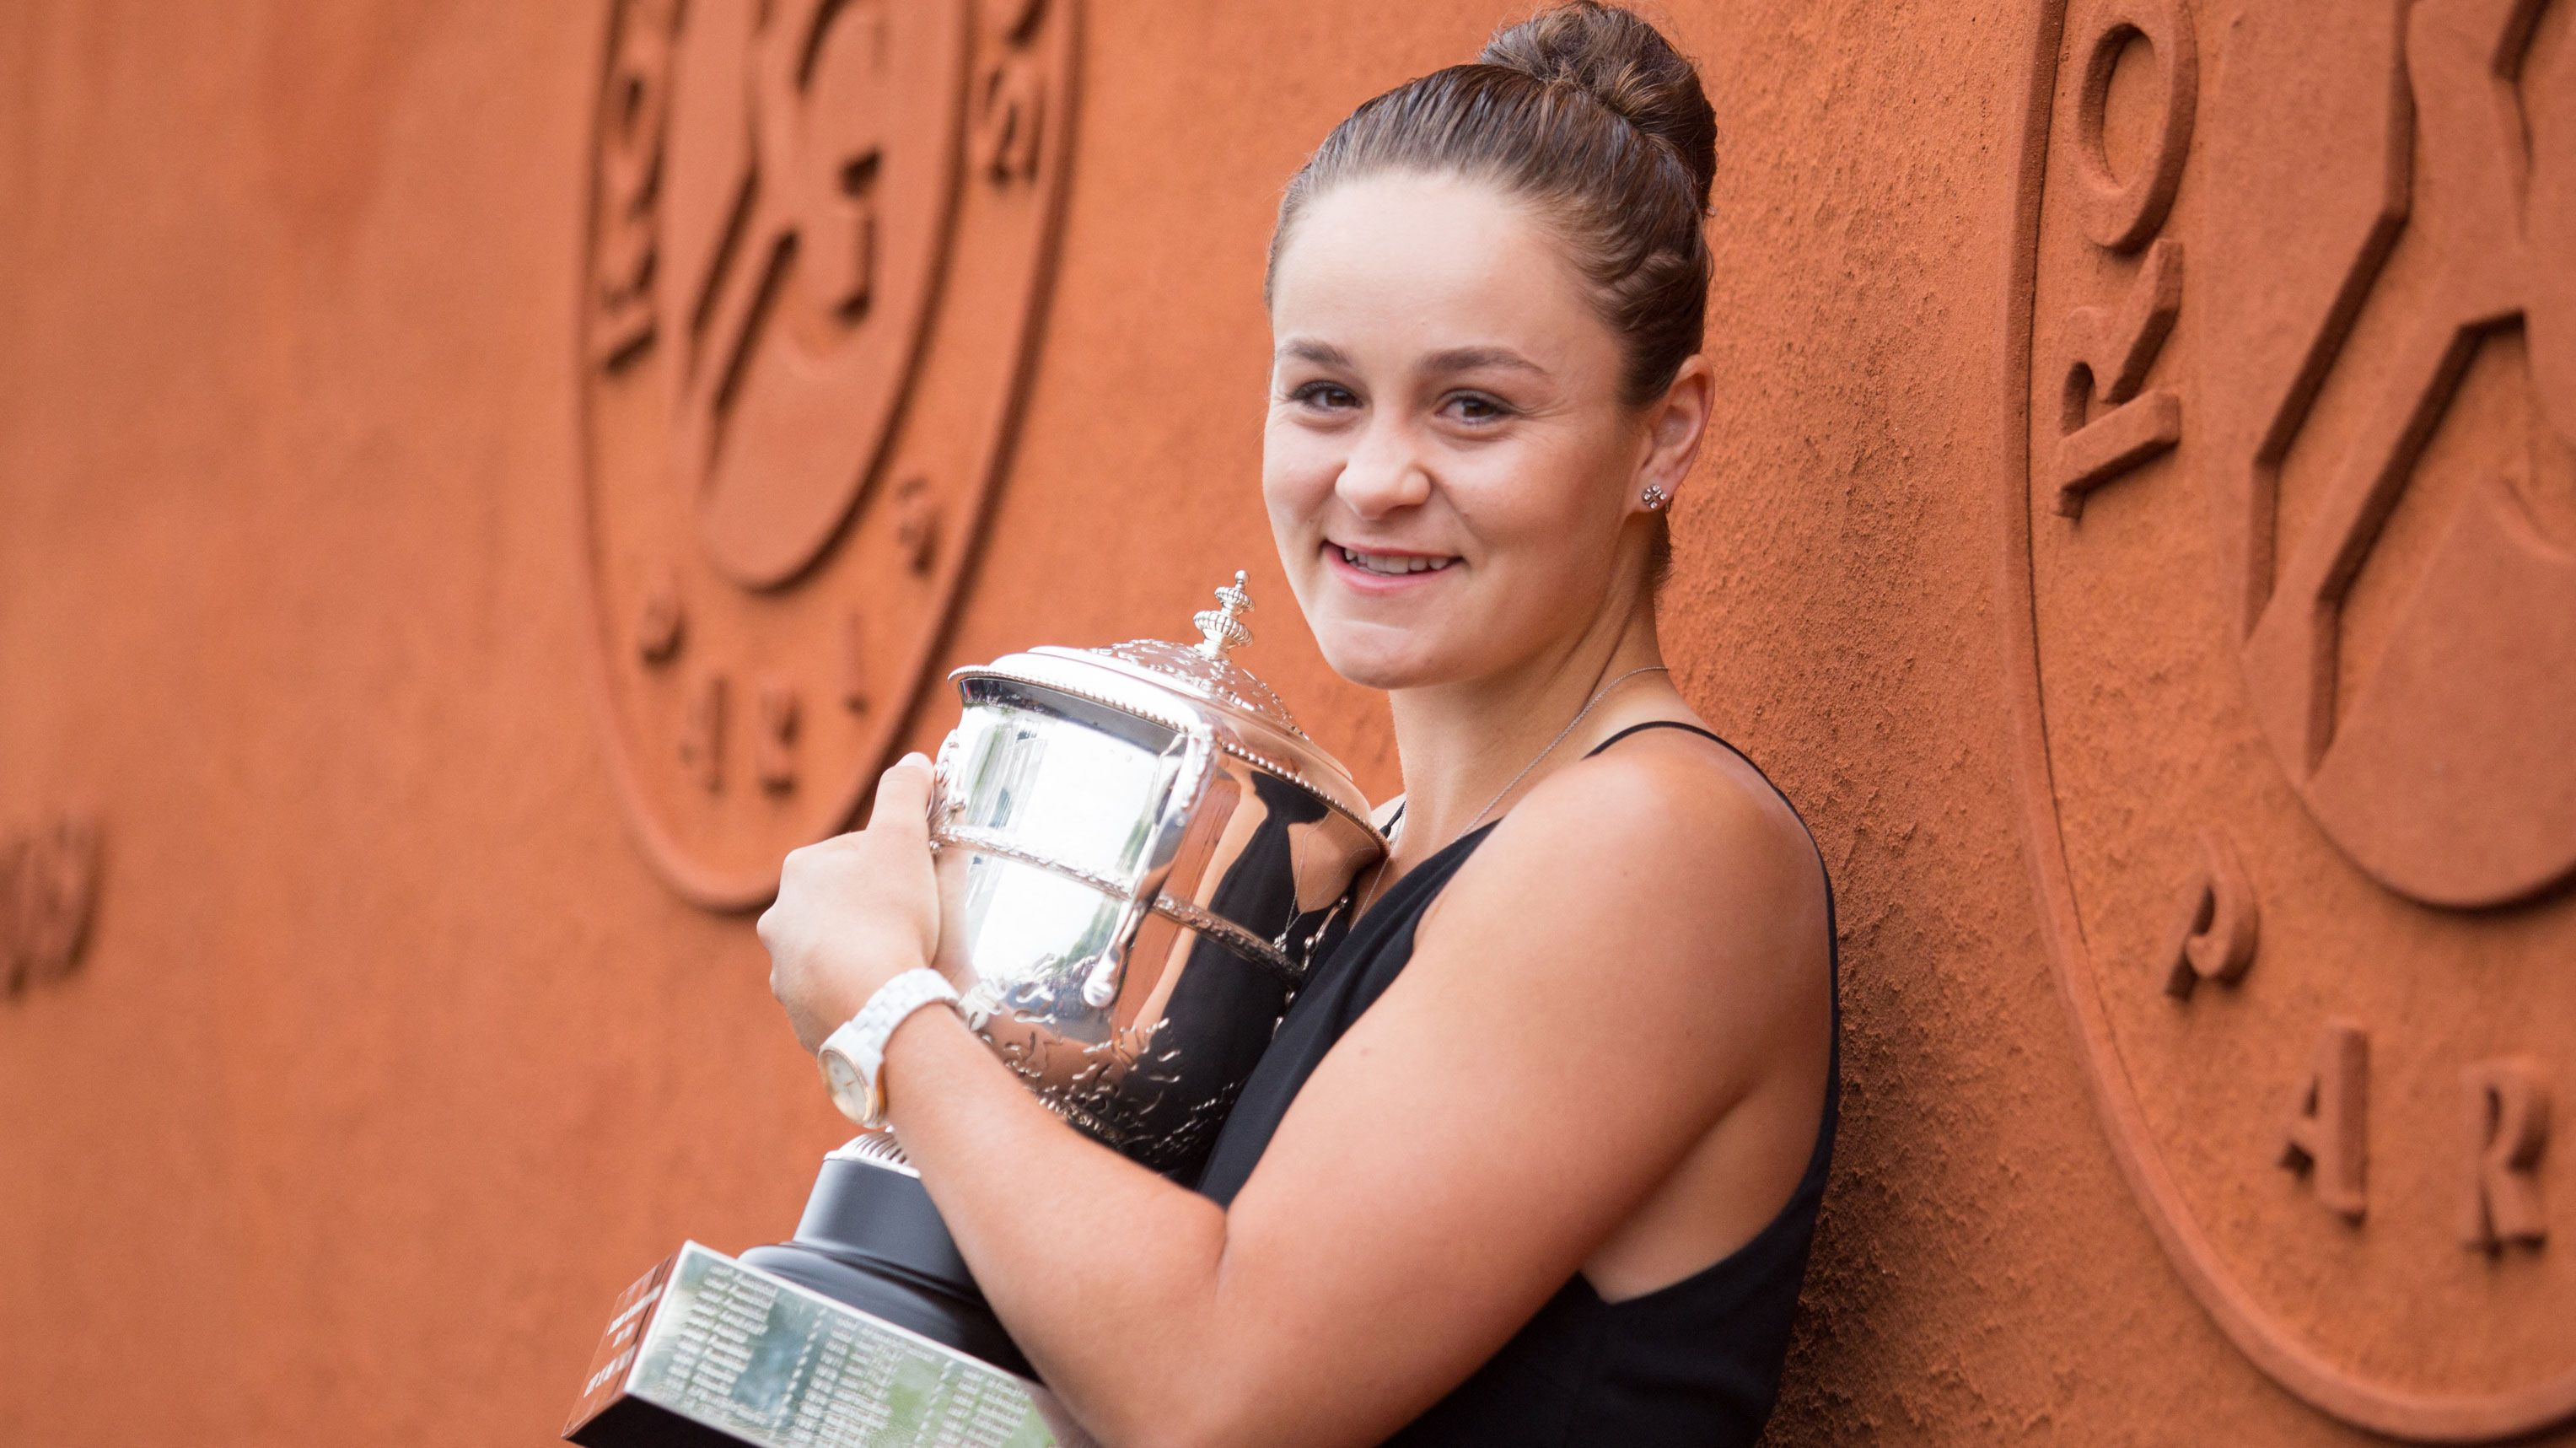 Ash Barty eyes world No.1 ranking as next goal following French Open win